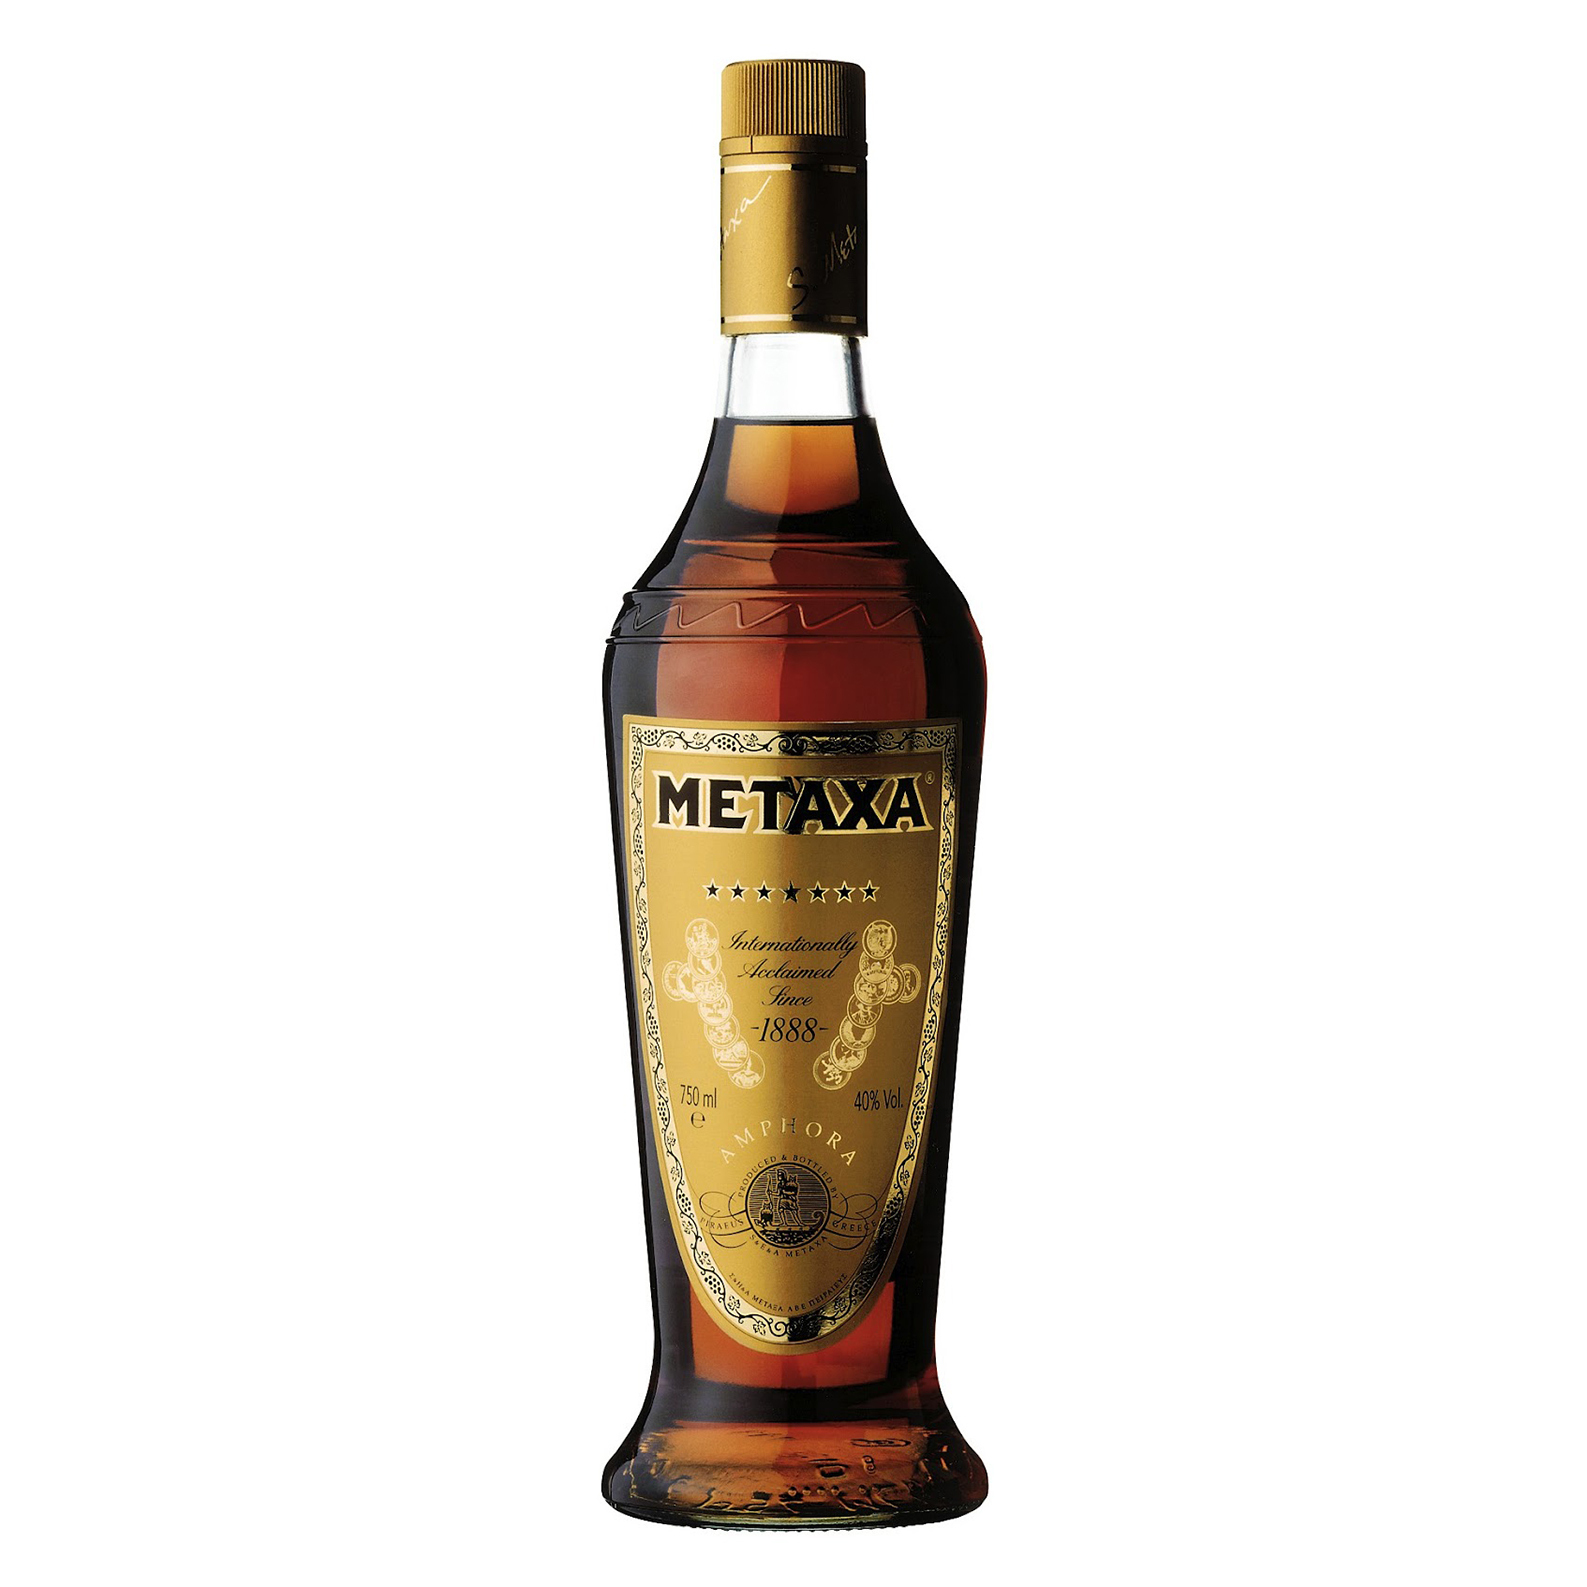 Metaxa 7 Stelle ******* - Brandy - 70cl - S. Metaxa